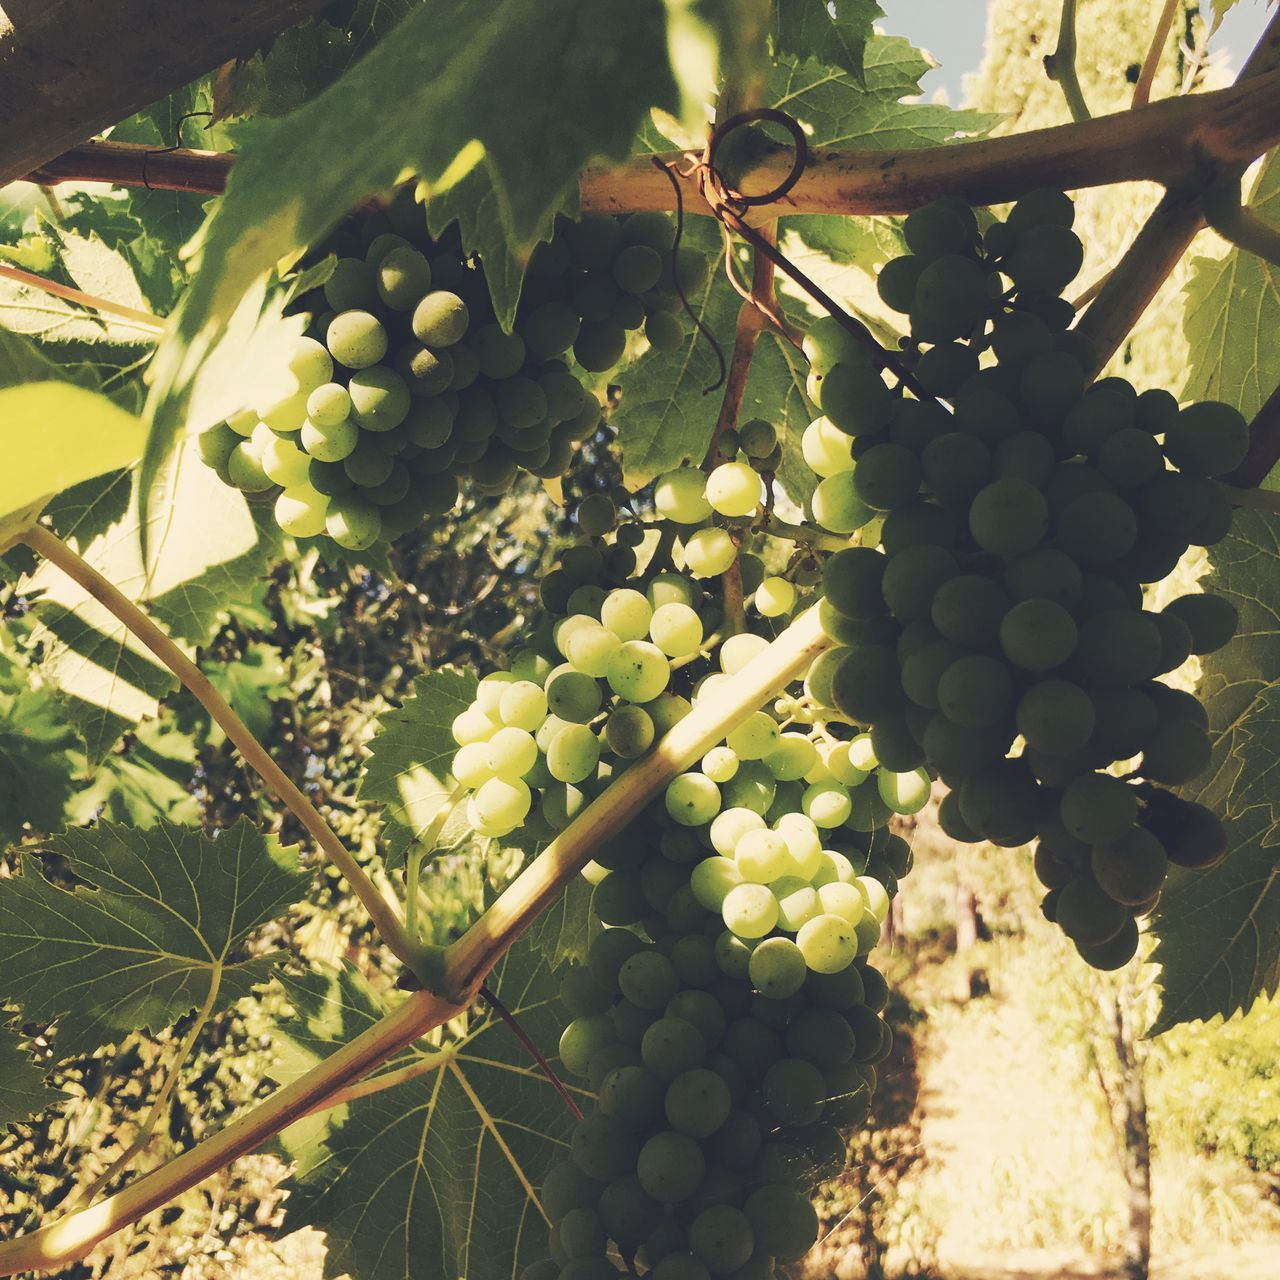 Close-Up Of Fresh Grapes Growing In Vineyard